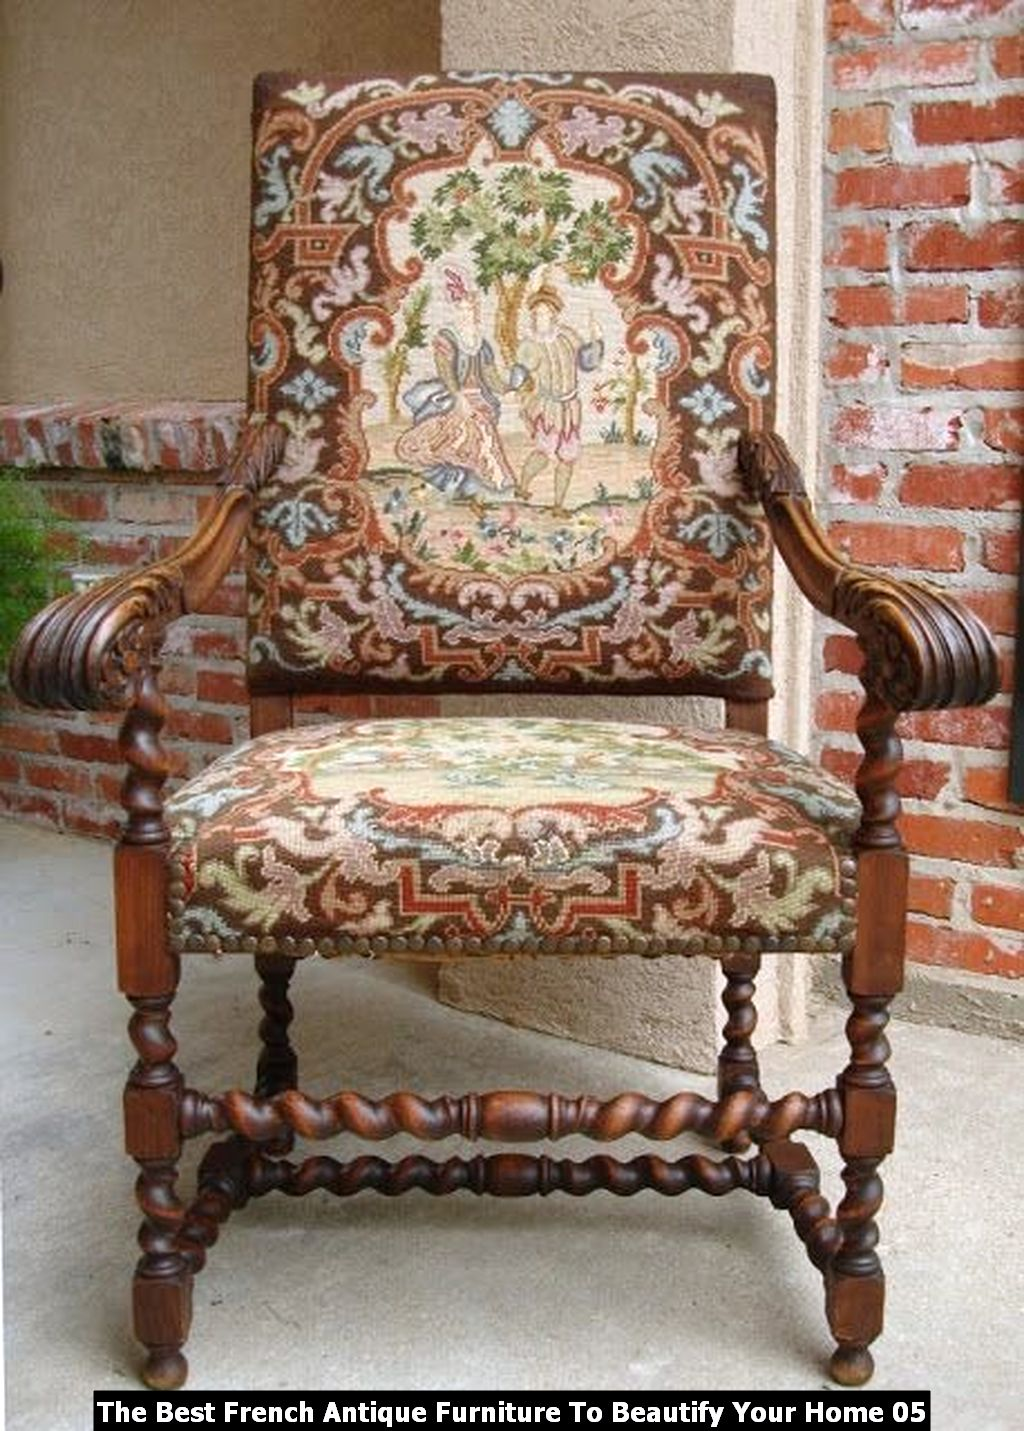 The Best French Antique Furniture To Beautify Your Home 05